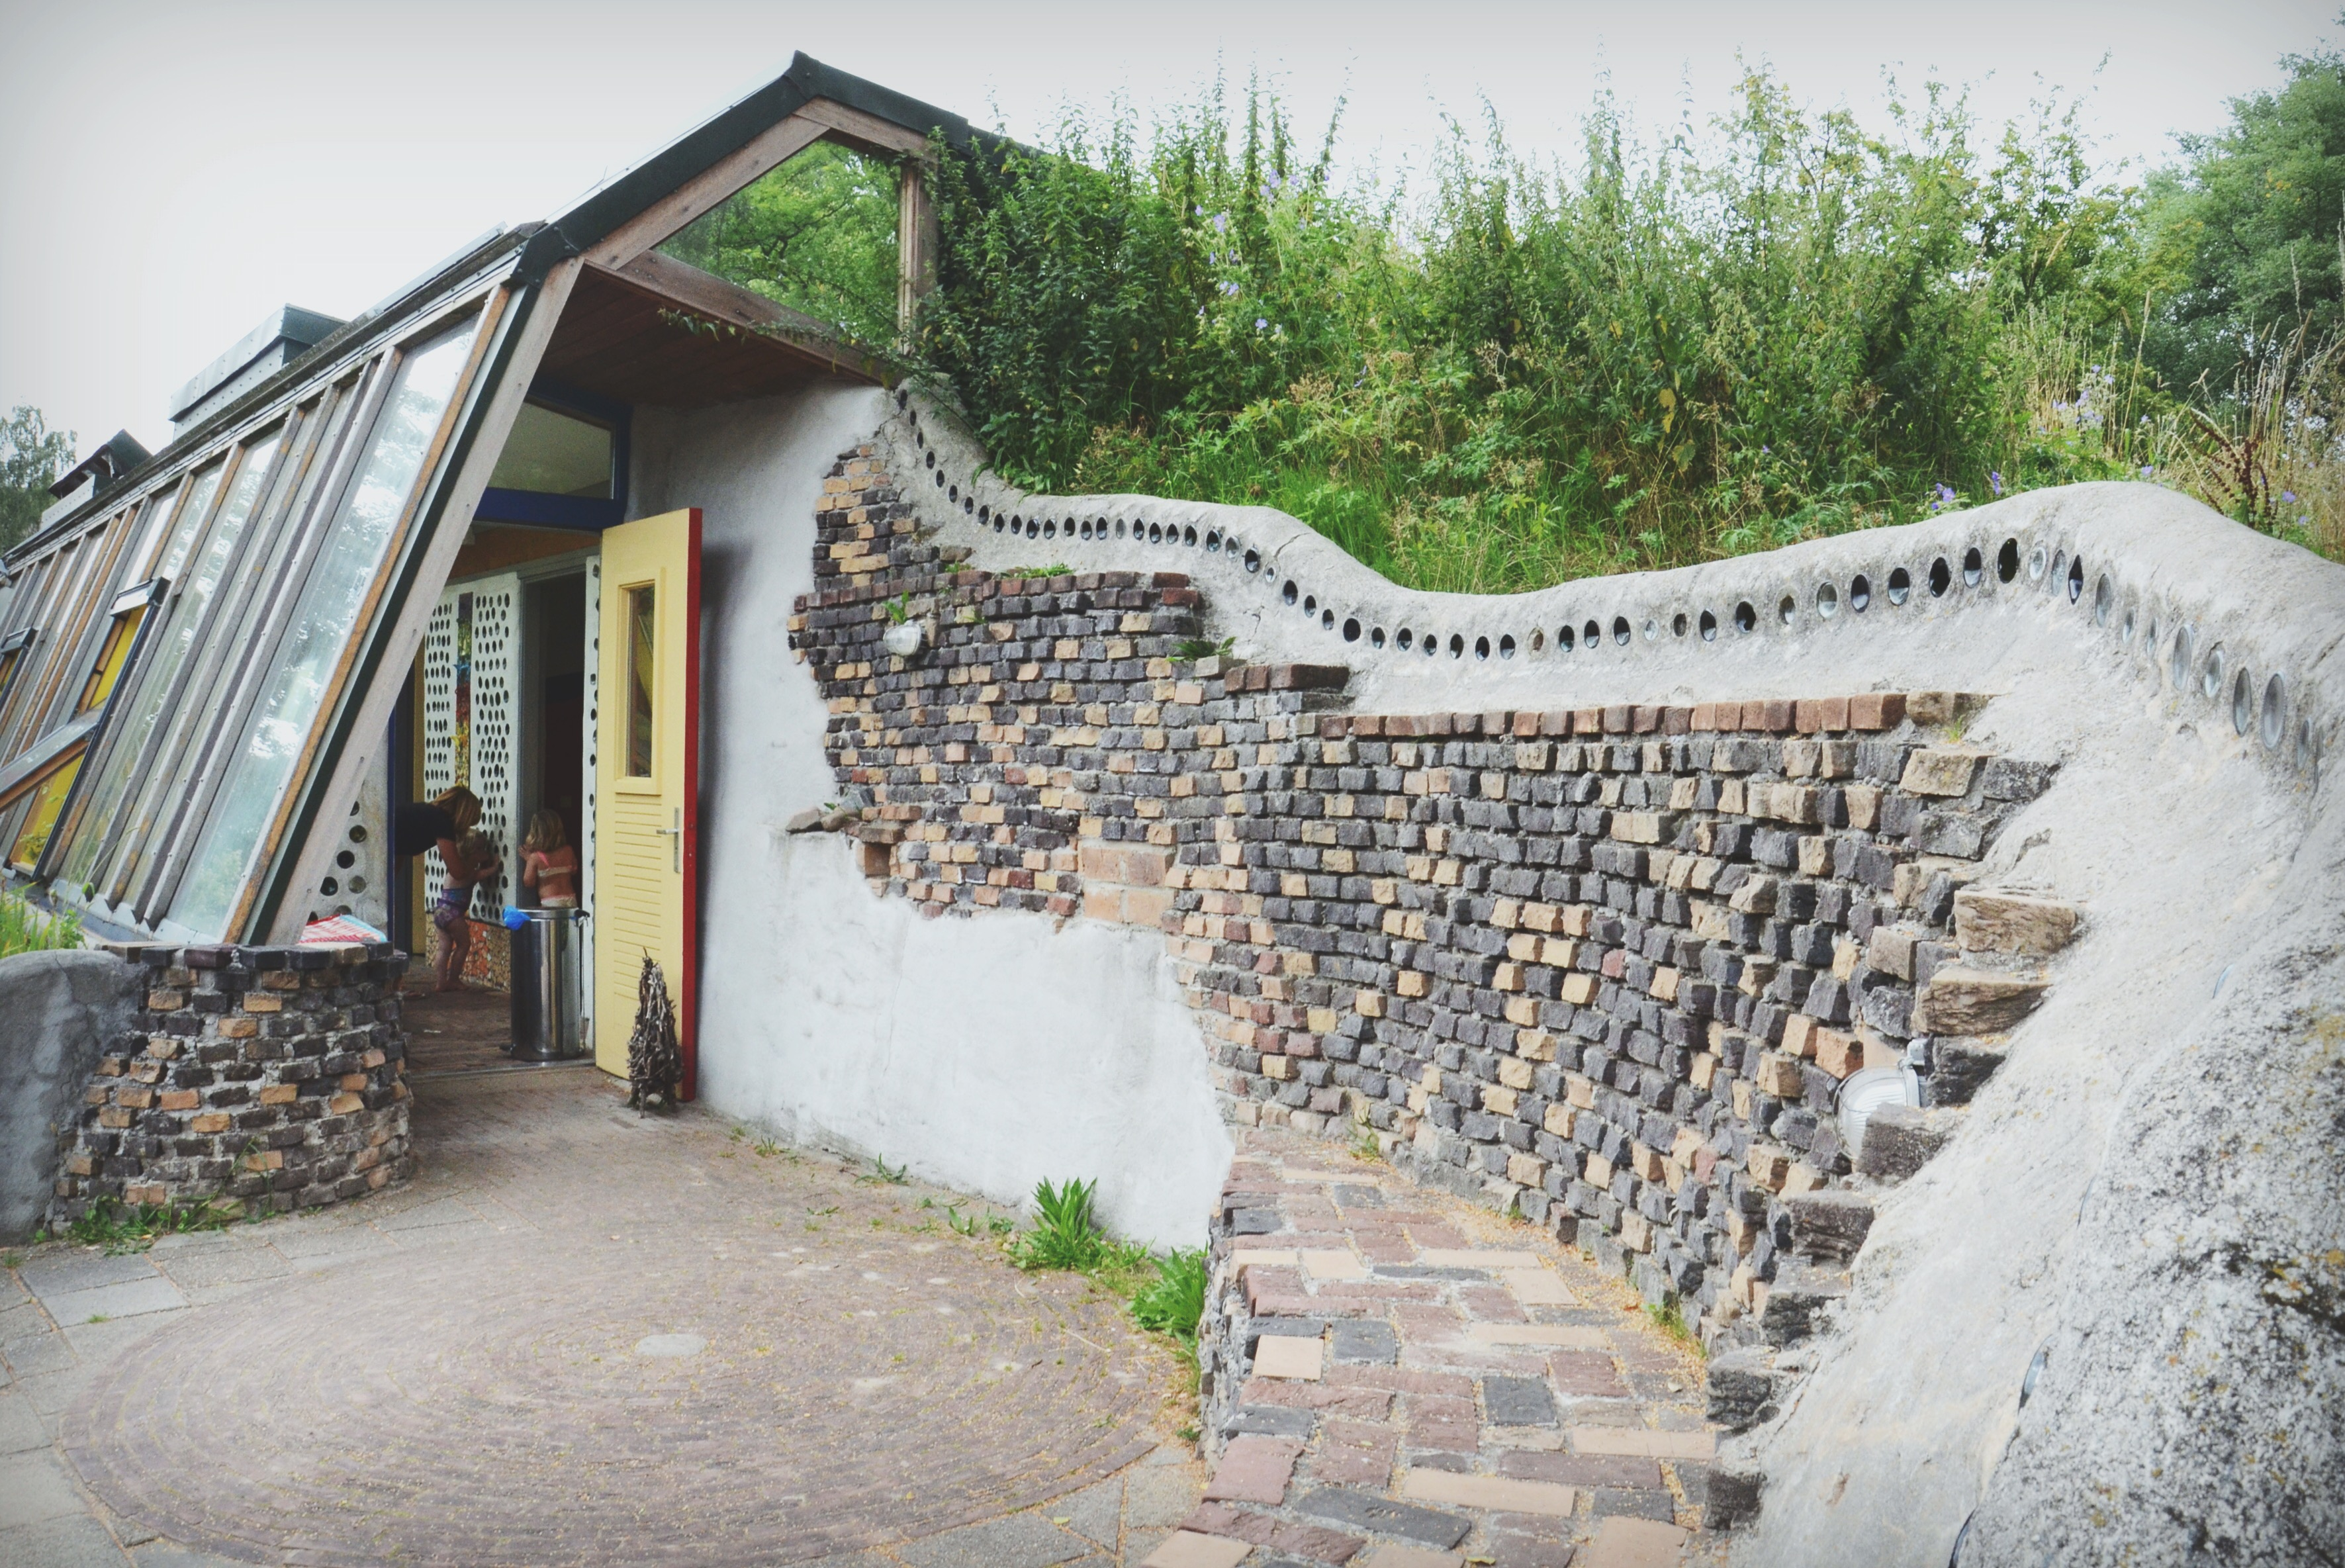 Theehuis Earthship Zwolle - 4